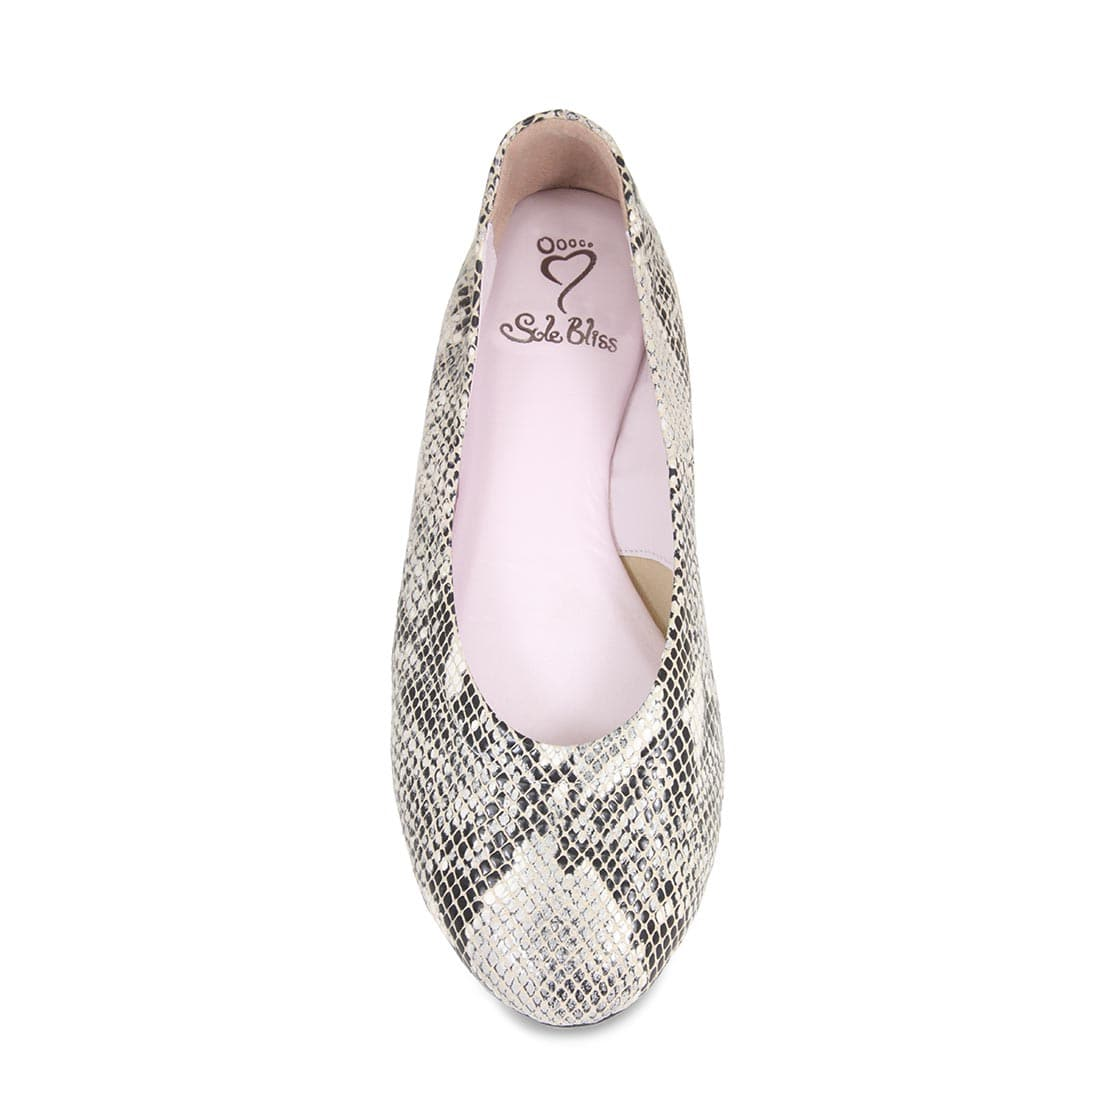 Grey Snake Print Leather Ballerina